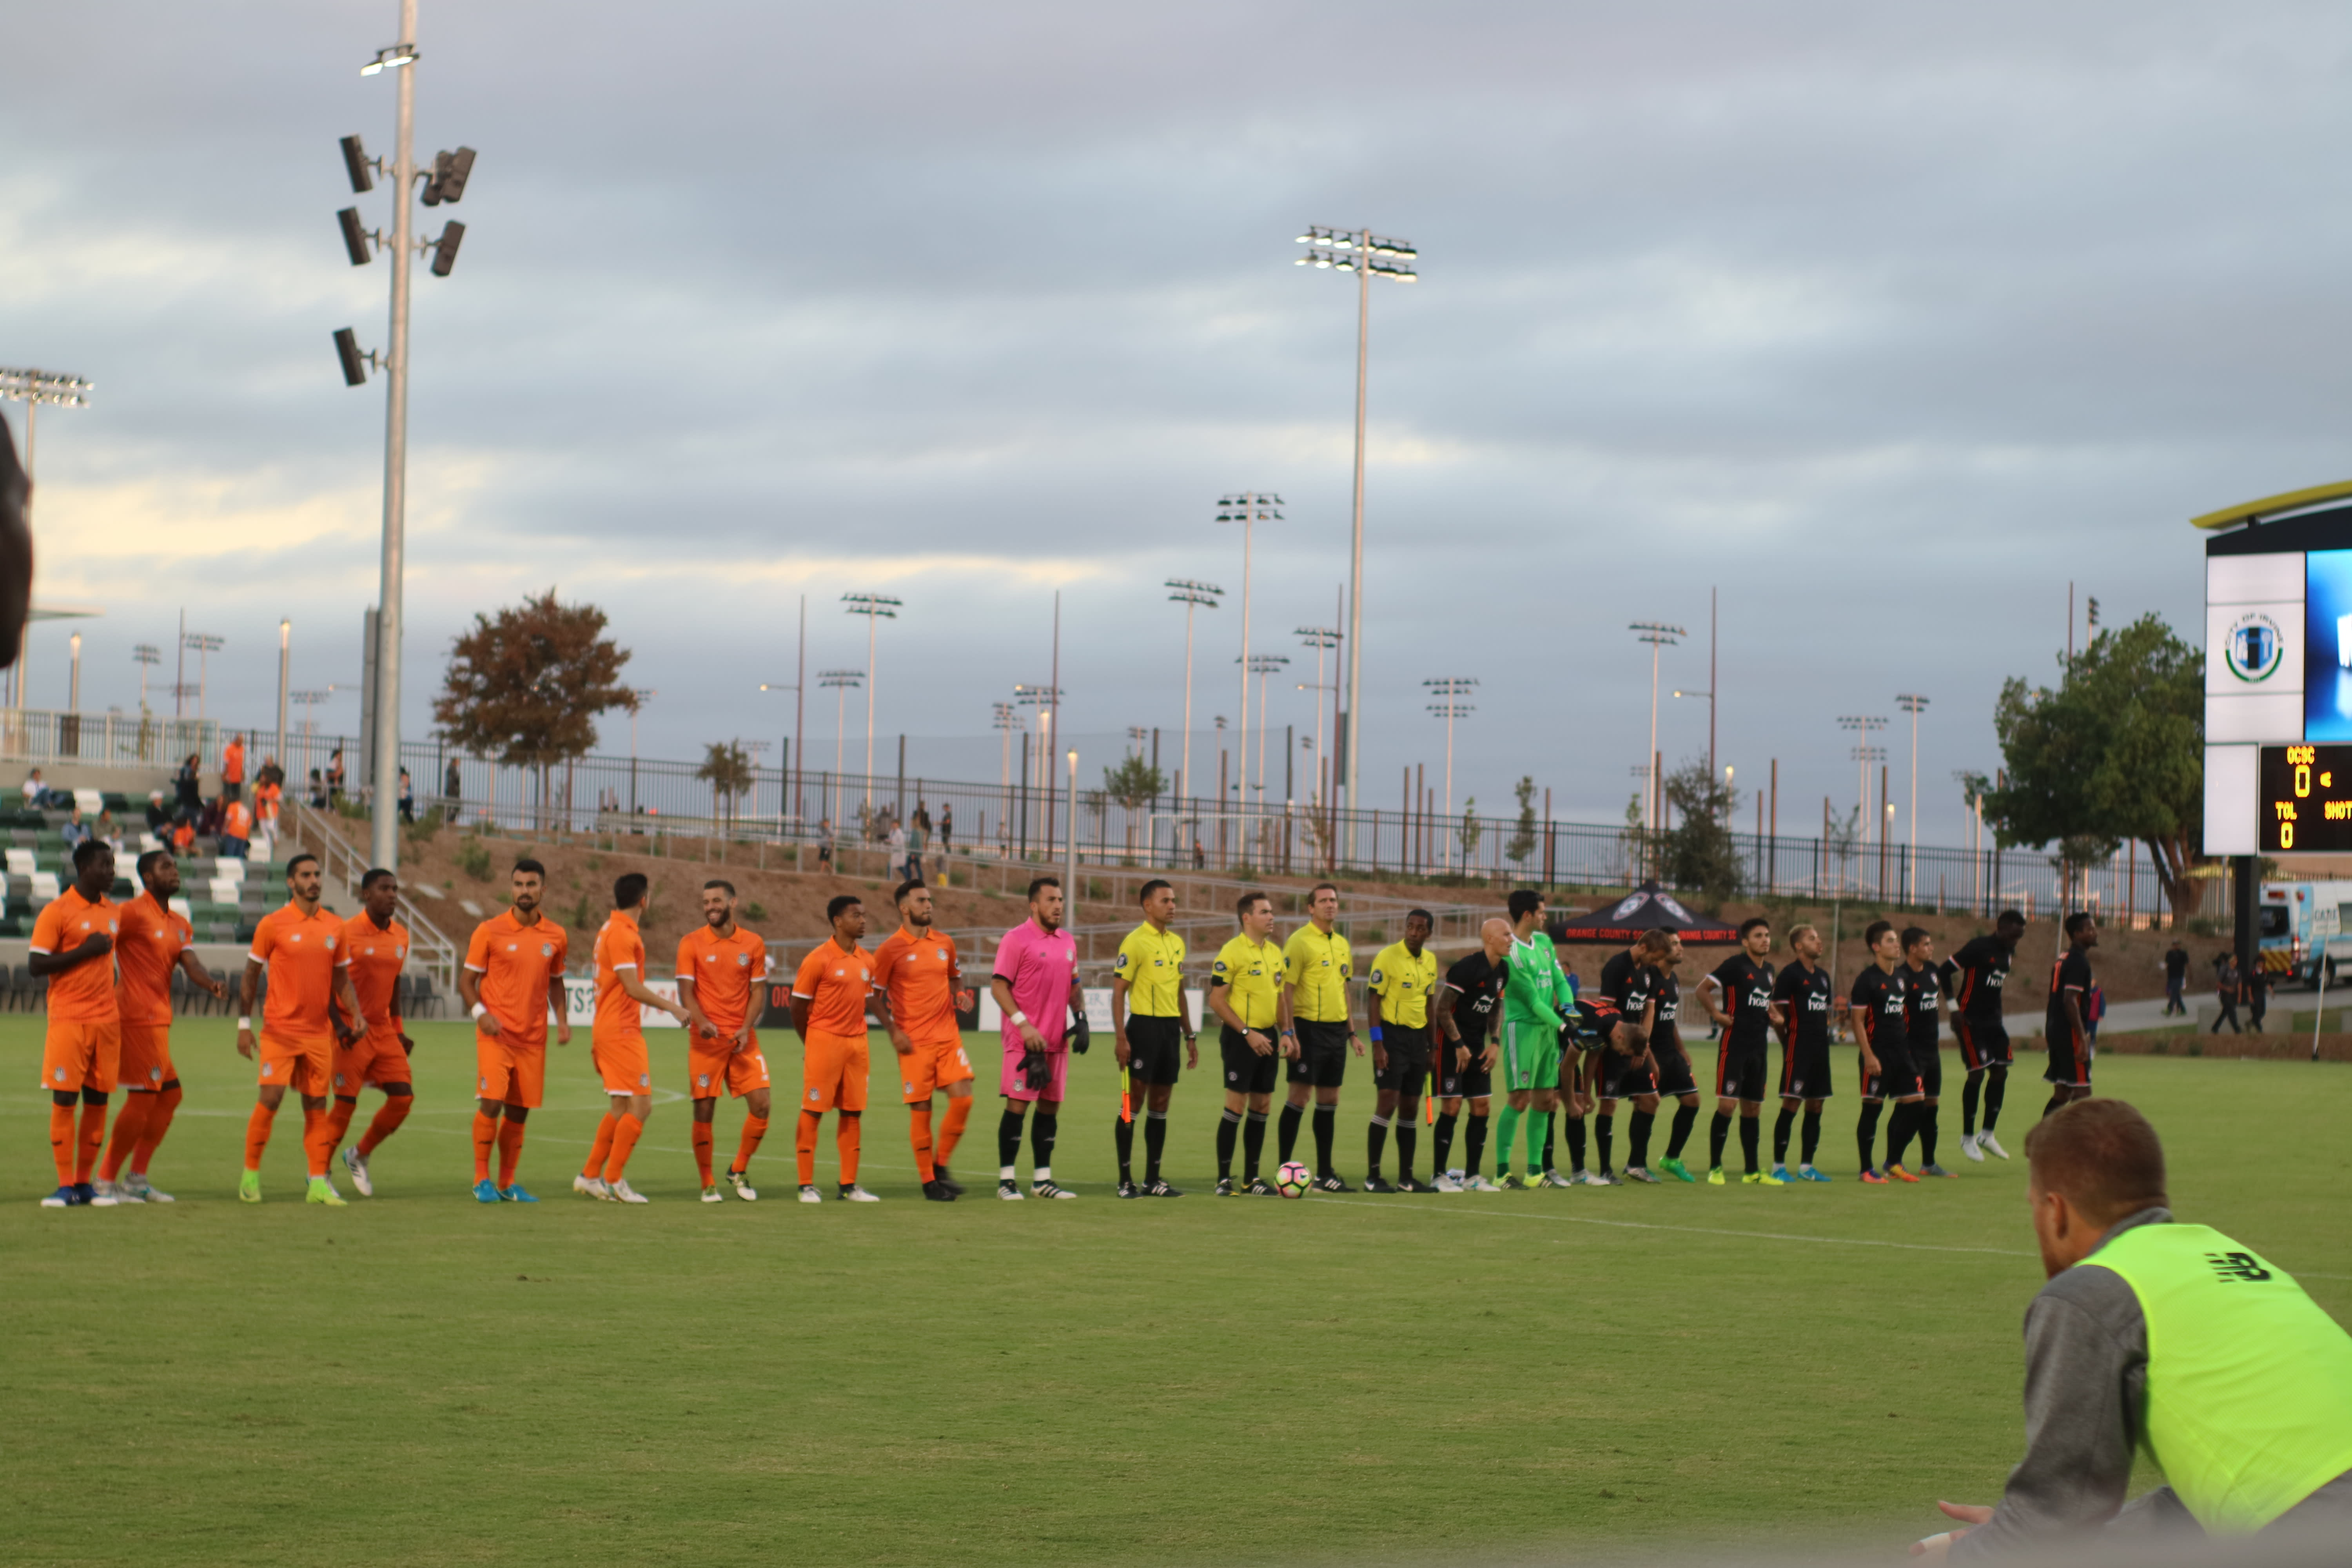 Soccer teams lined up on the Field